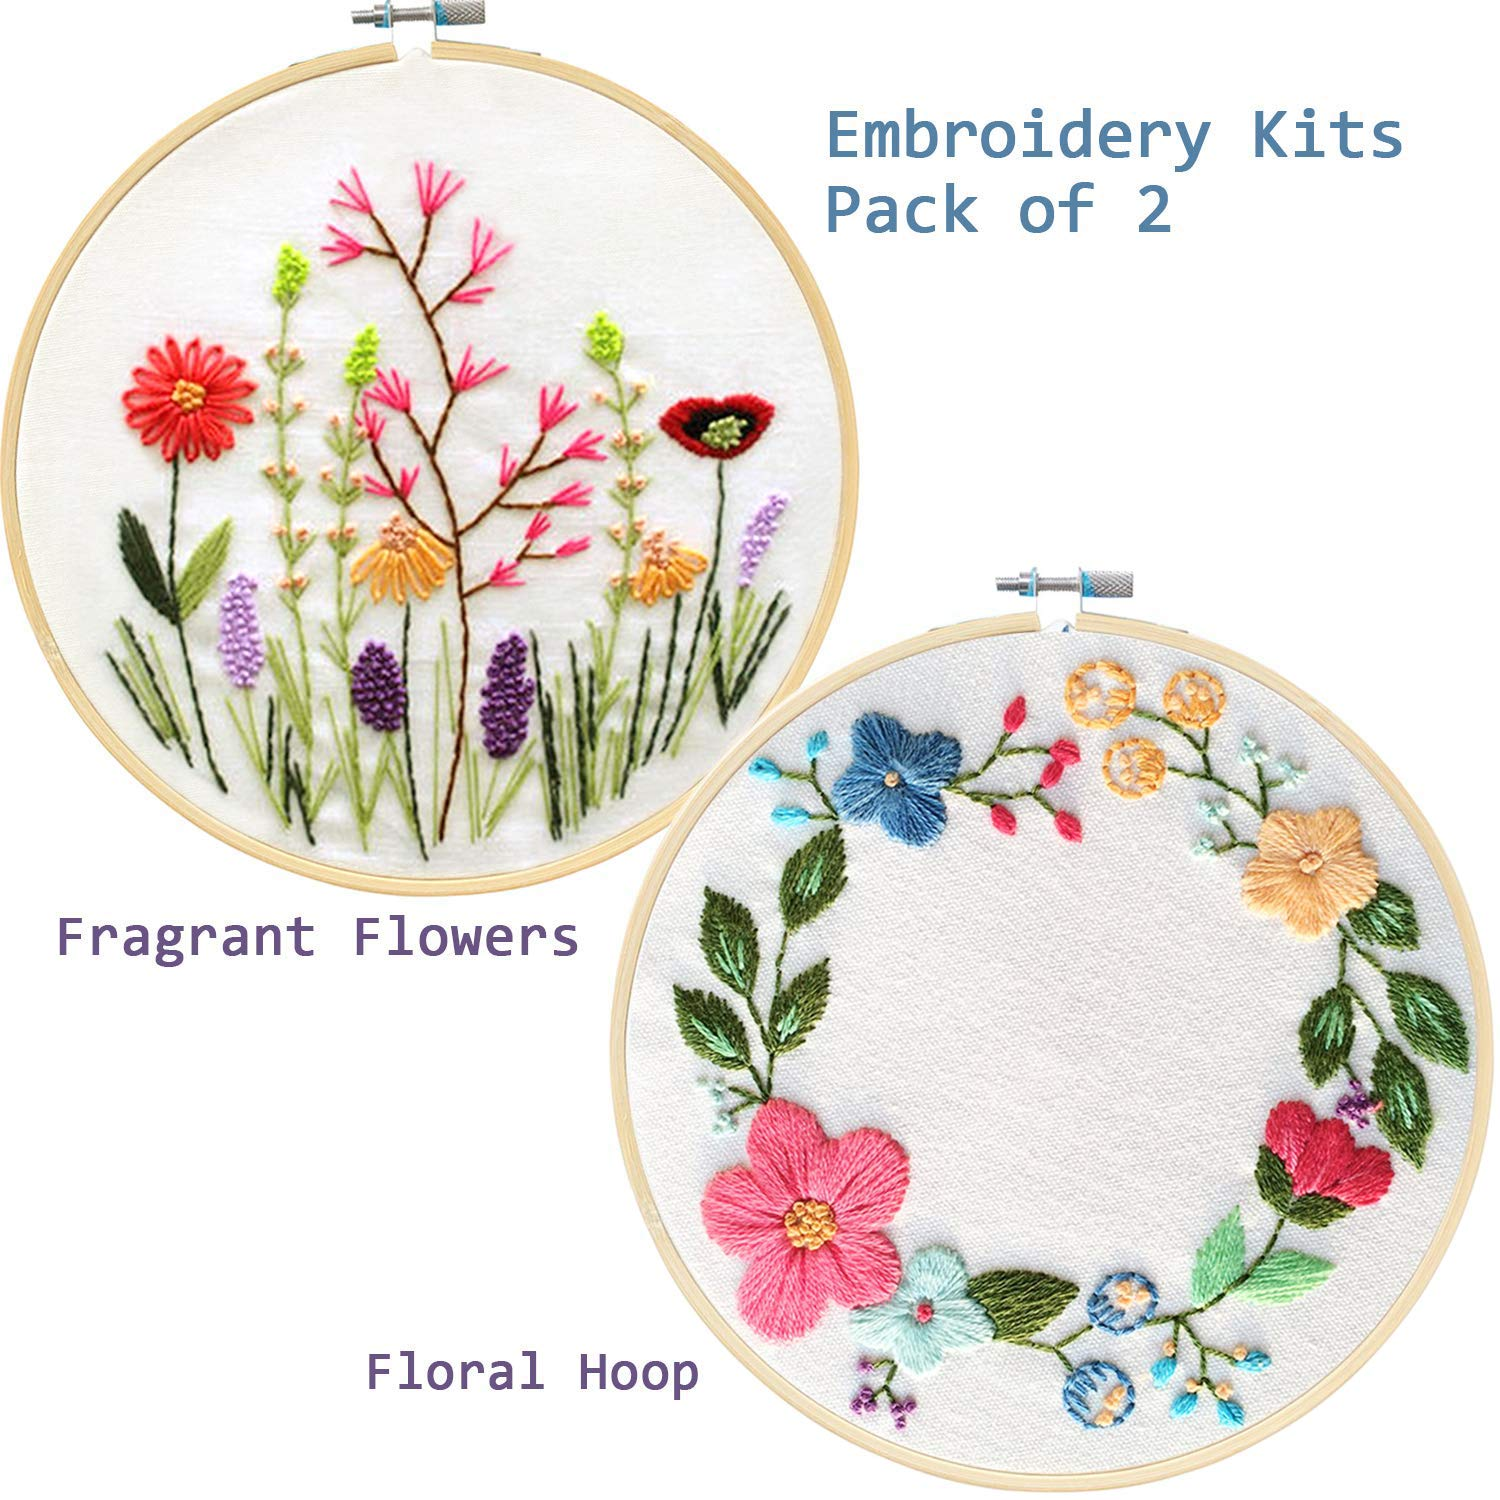 and Tools Kit Unime Full Range of Embroidery Starter Kit with Pattern Cross Stitch Kit Including Embroidery Cloth with Color Pattern Sunflower,Bouquet Embroidery Hoop Color Threads